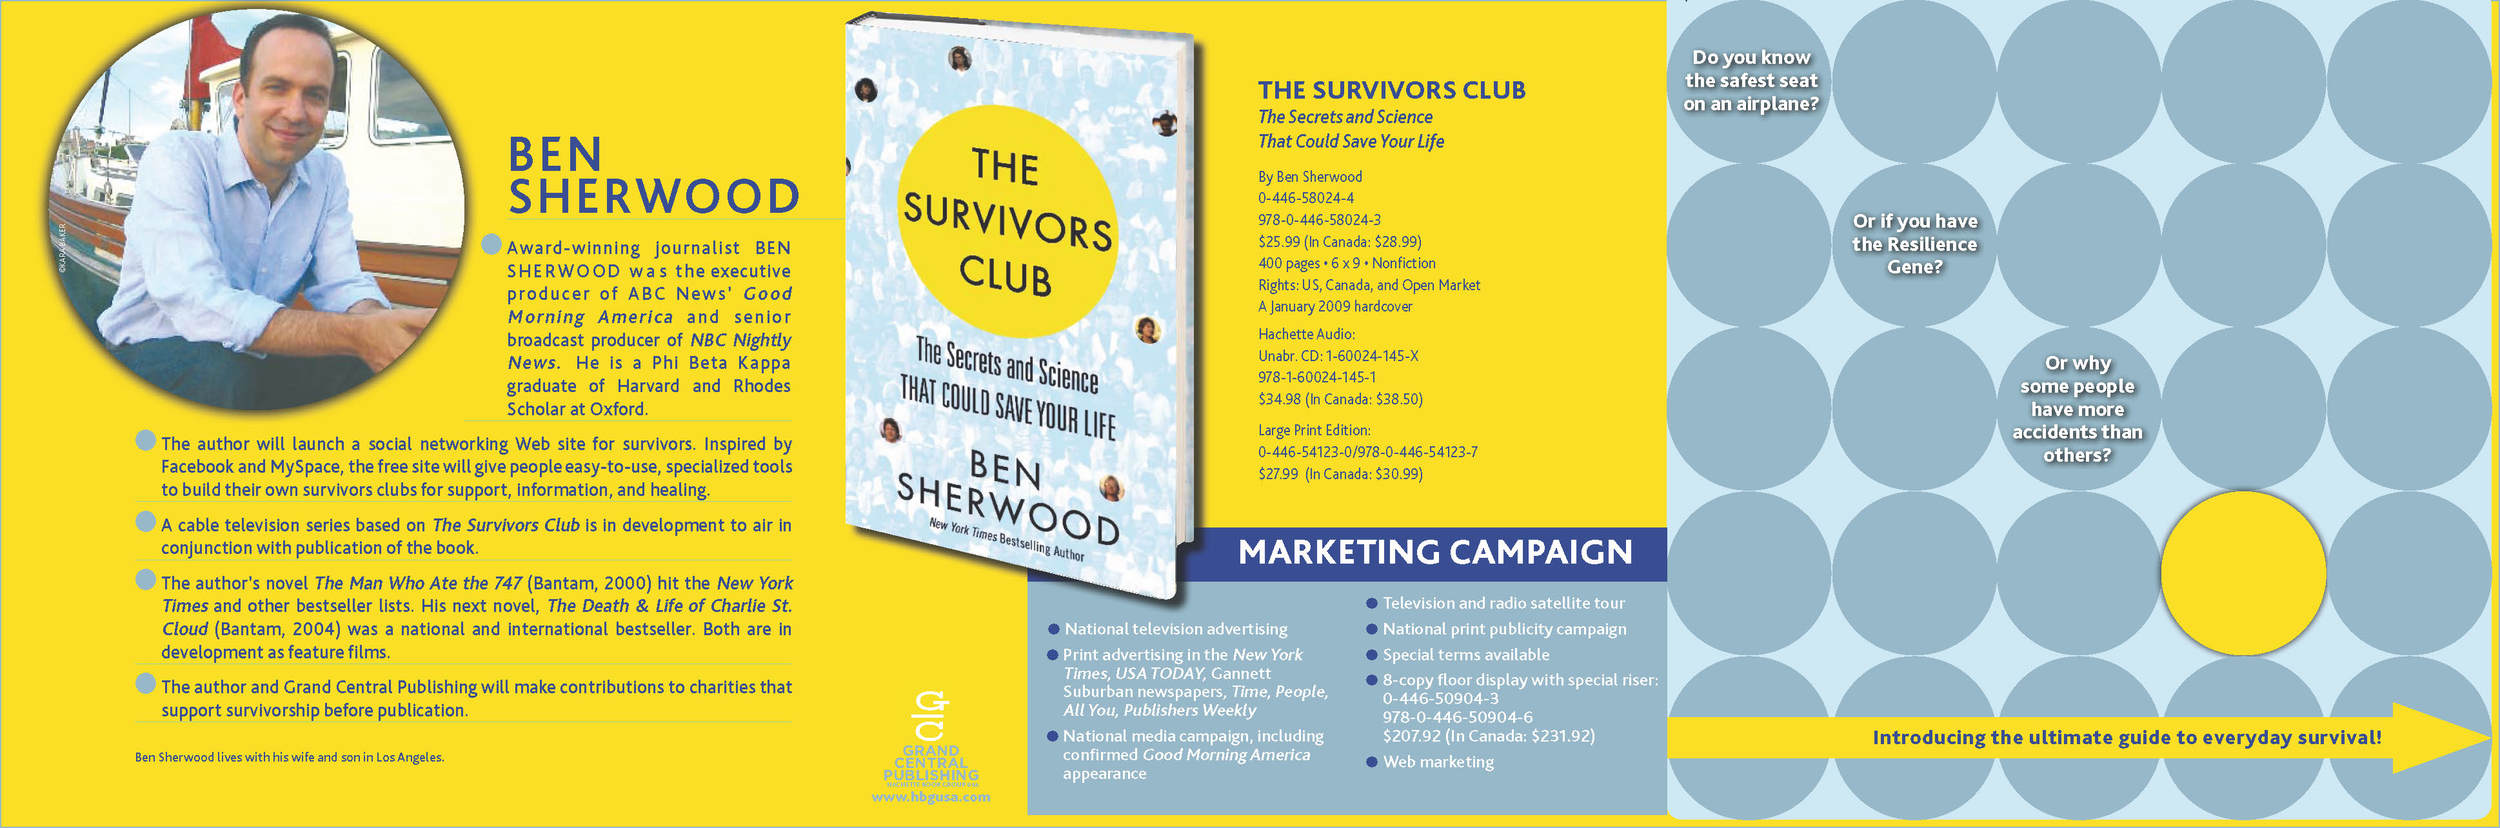 Survivors Club brochure_Page_1.jpg